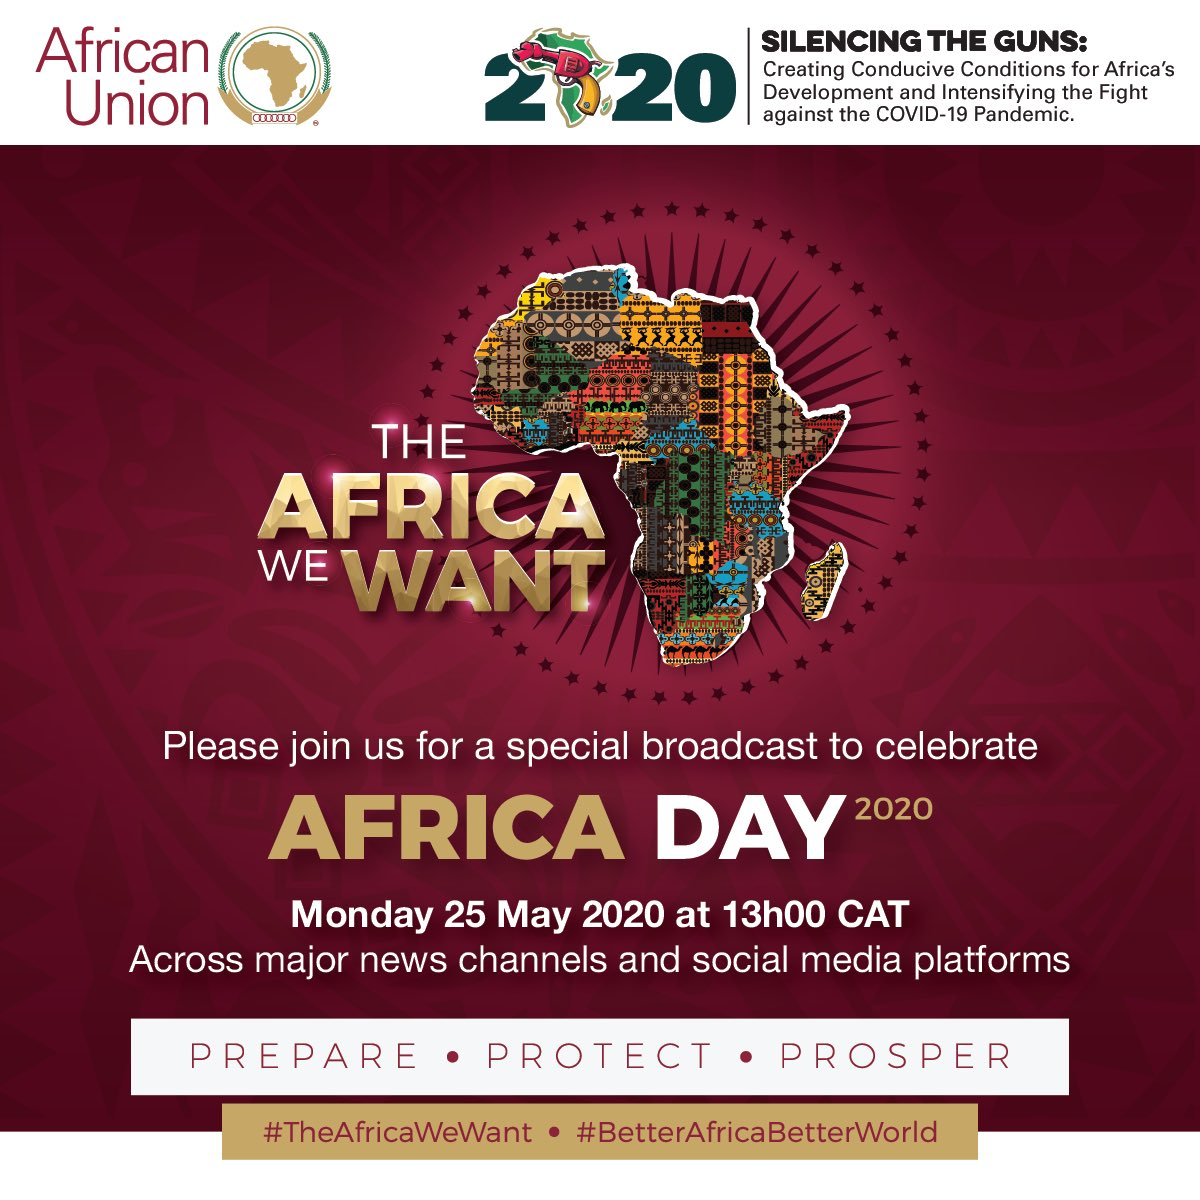 AFRICA DAY 2020 takes place under the theme: #SilencingTheGuns: Creating Conducive Conditions for Africa's Development and Intensifying the Fight against the #COVID19 Pandemic #AfricaDay  #TheAfricaWeWant #BetterAfricaBetterWorld #AfricaResponds https://t.co/IS3tSzKvgM